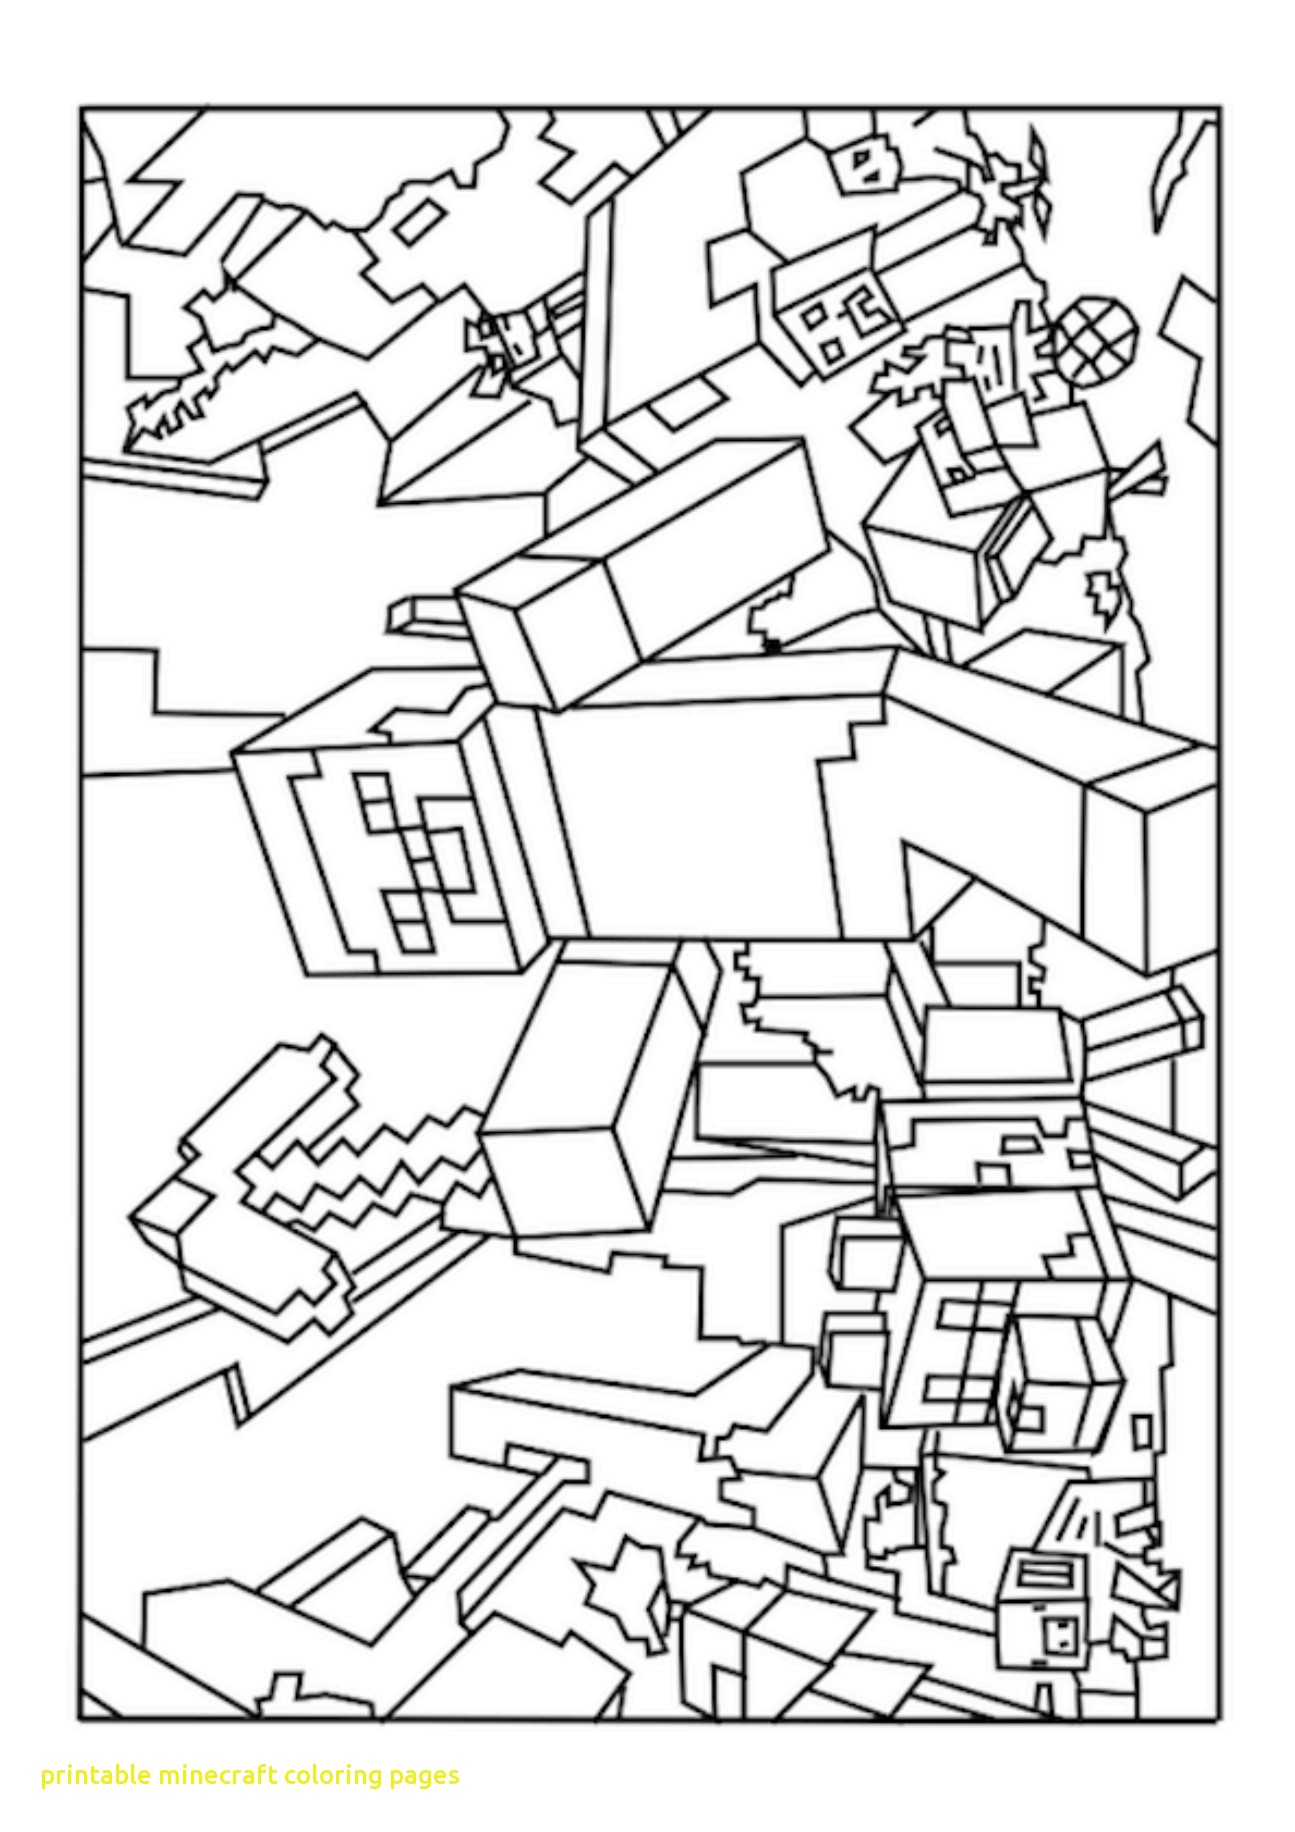 1295x1832 Printable Minecraft Coloring Pages With World Minecraft Coloring